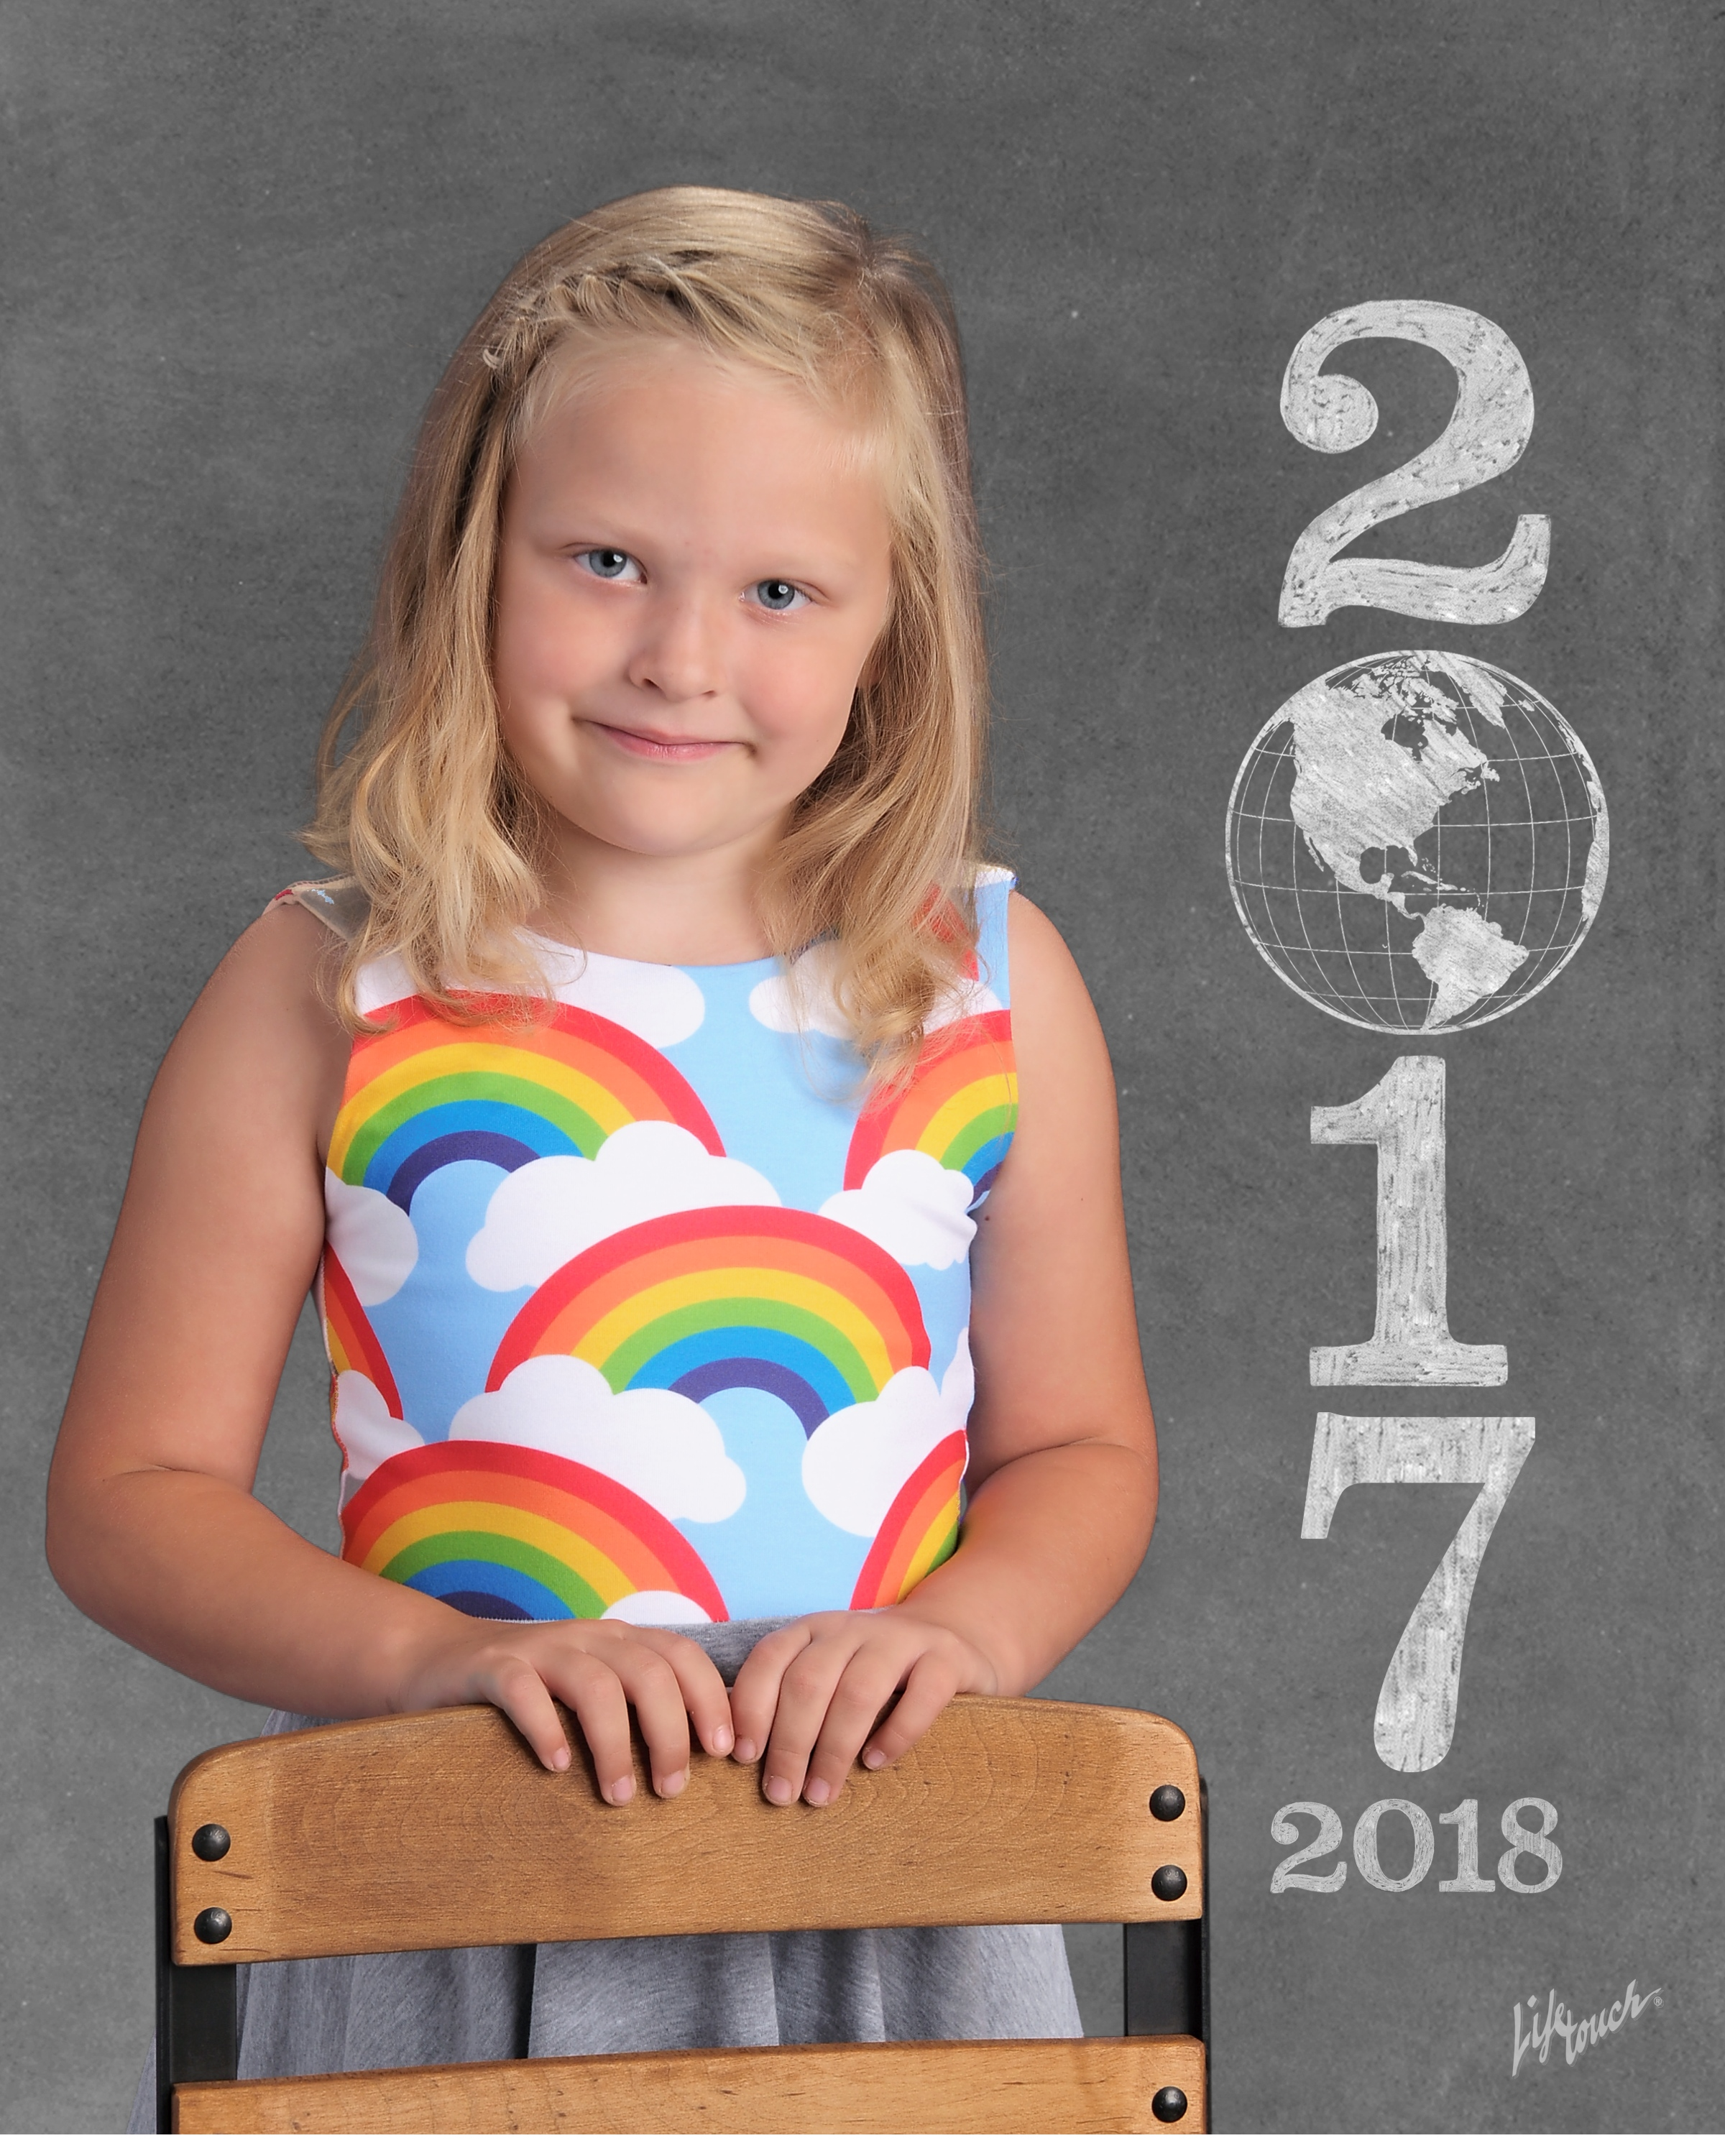 My favorite school photo of her in Mali + Kai - I will never forget my Grandma telling me over and over how adorable she looked in her rainbow dress :)